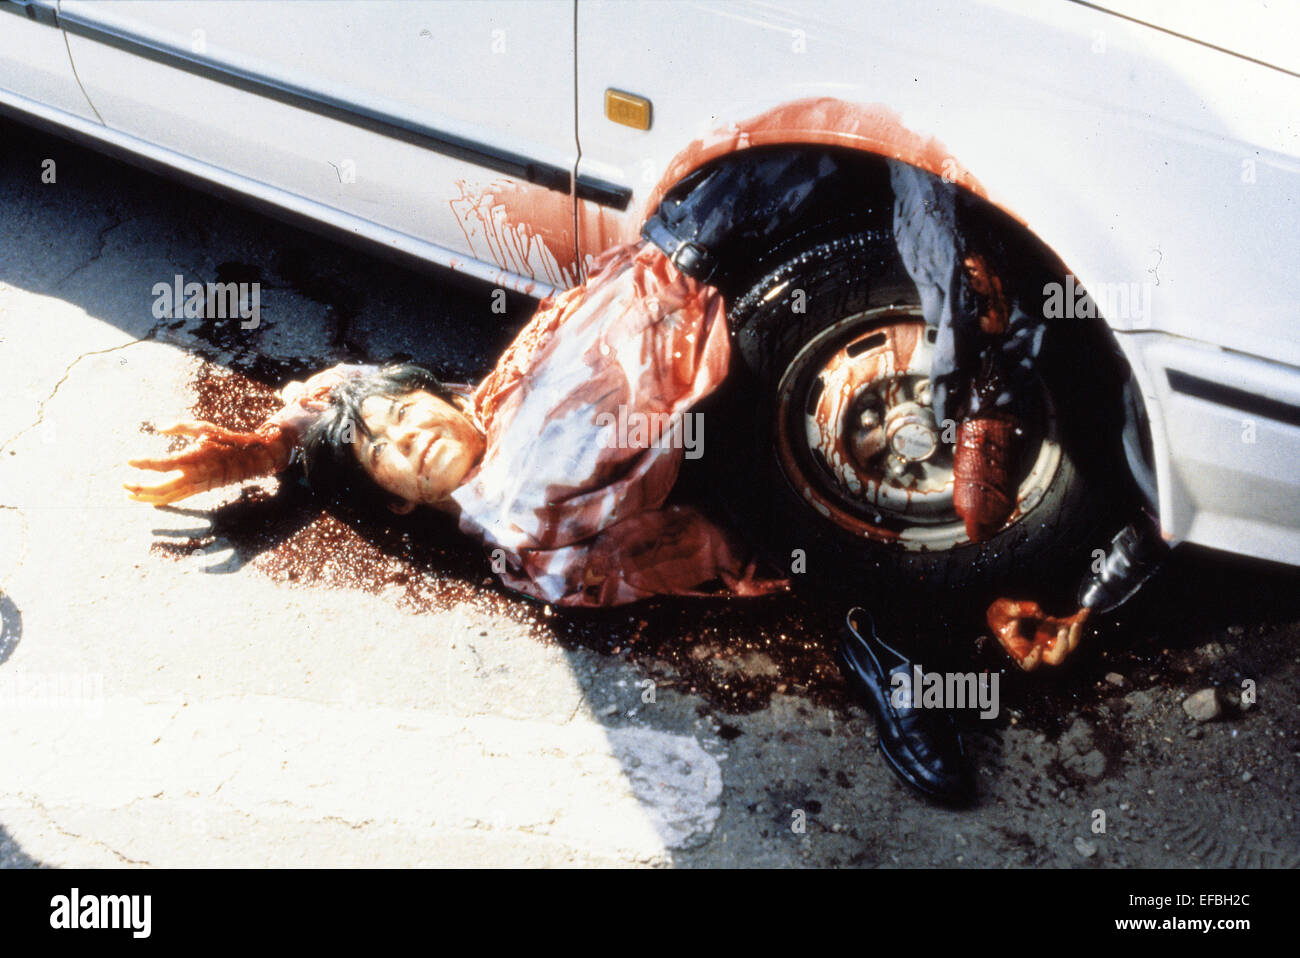 Is A Car Accident A Crime Scene